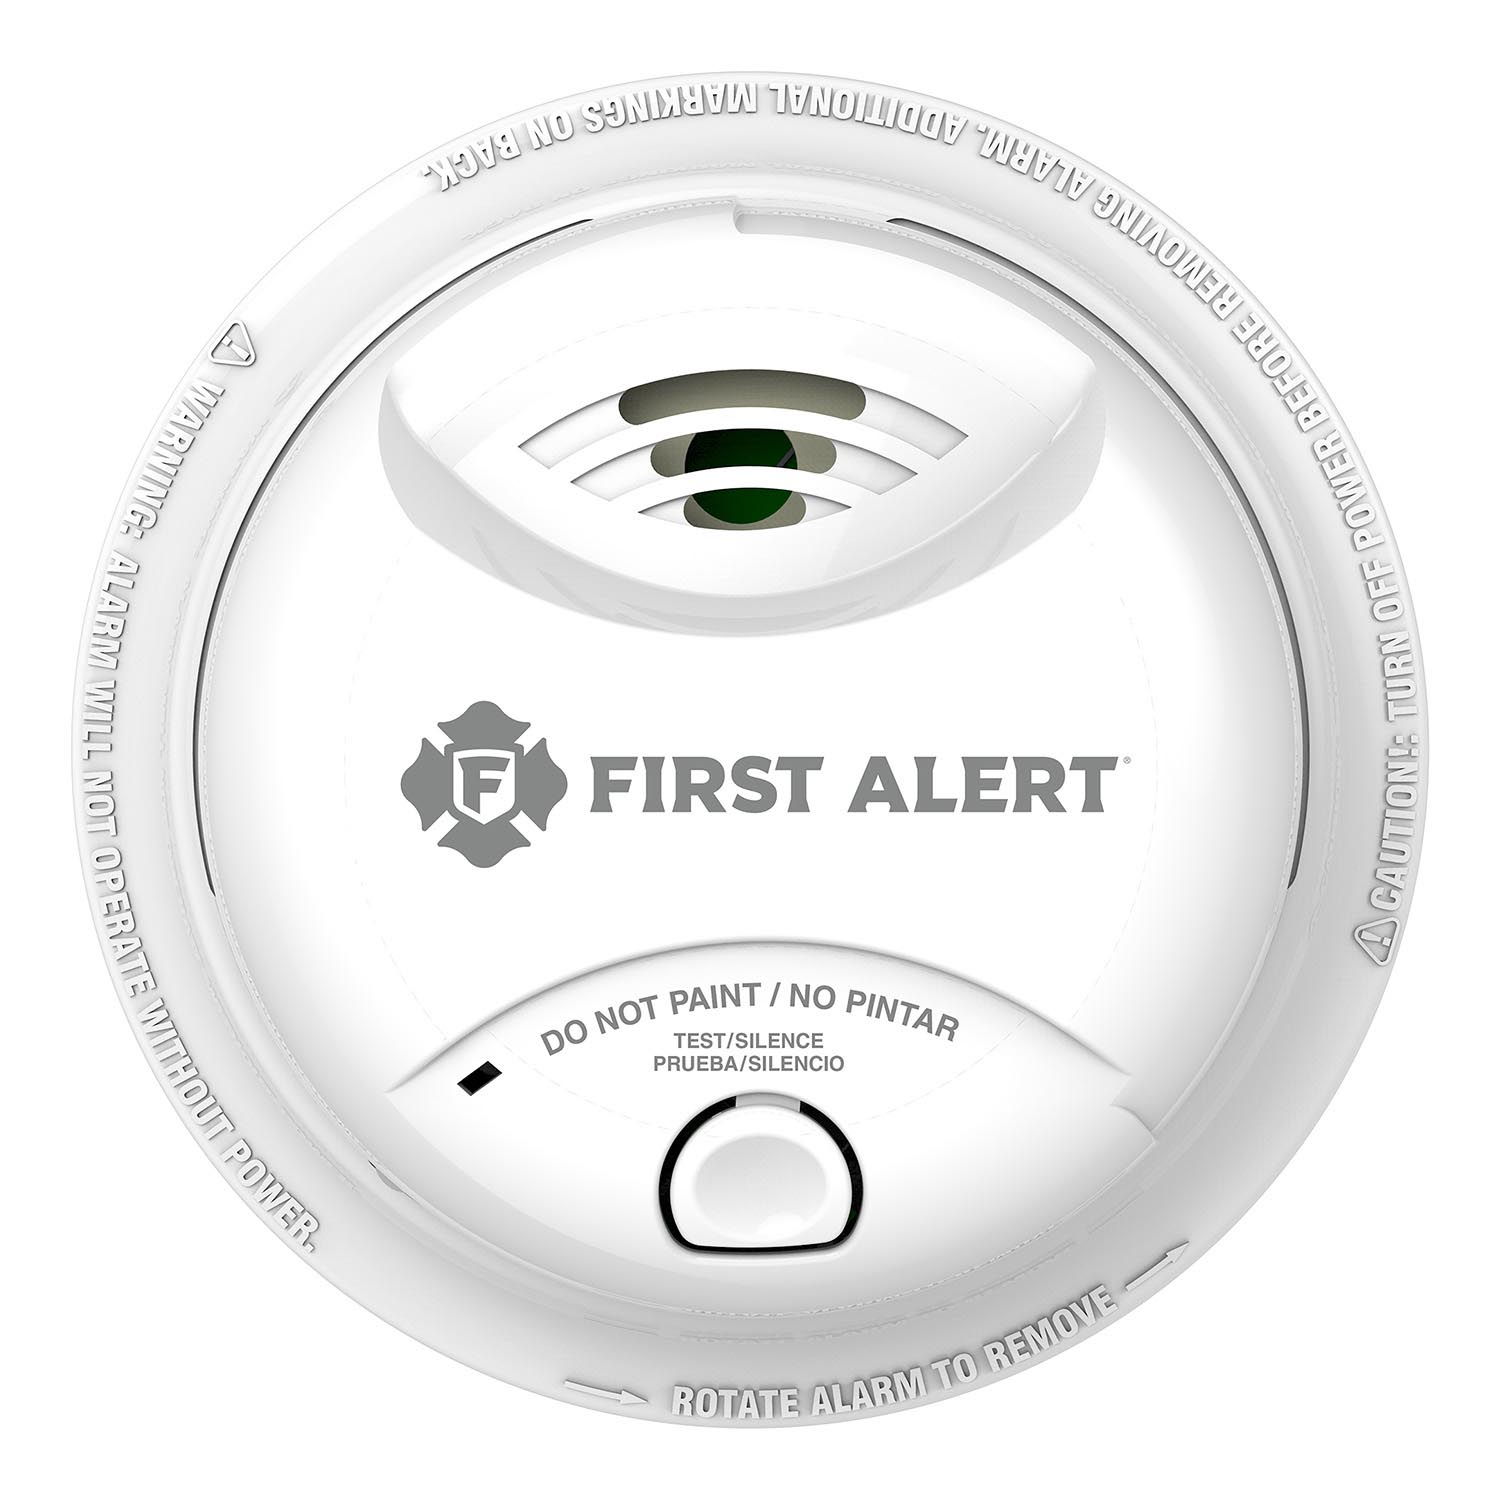 first alert 0827b ten year sealed battery ionization smoke alarm first alert store. Black Bedroom Furniture Sets. Home Design Ideas